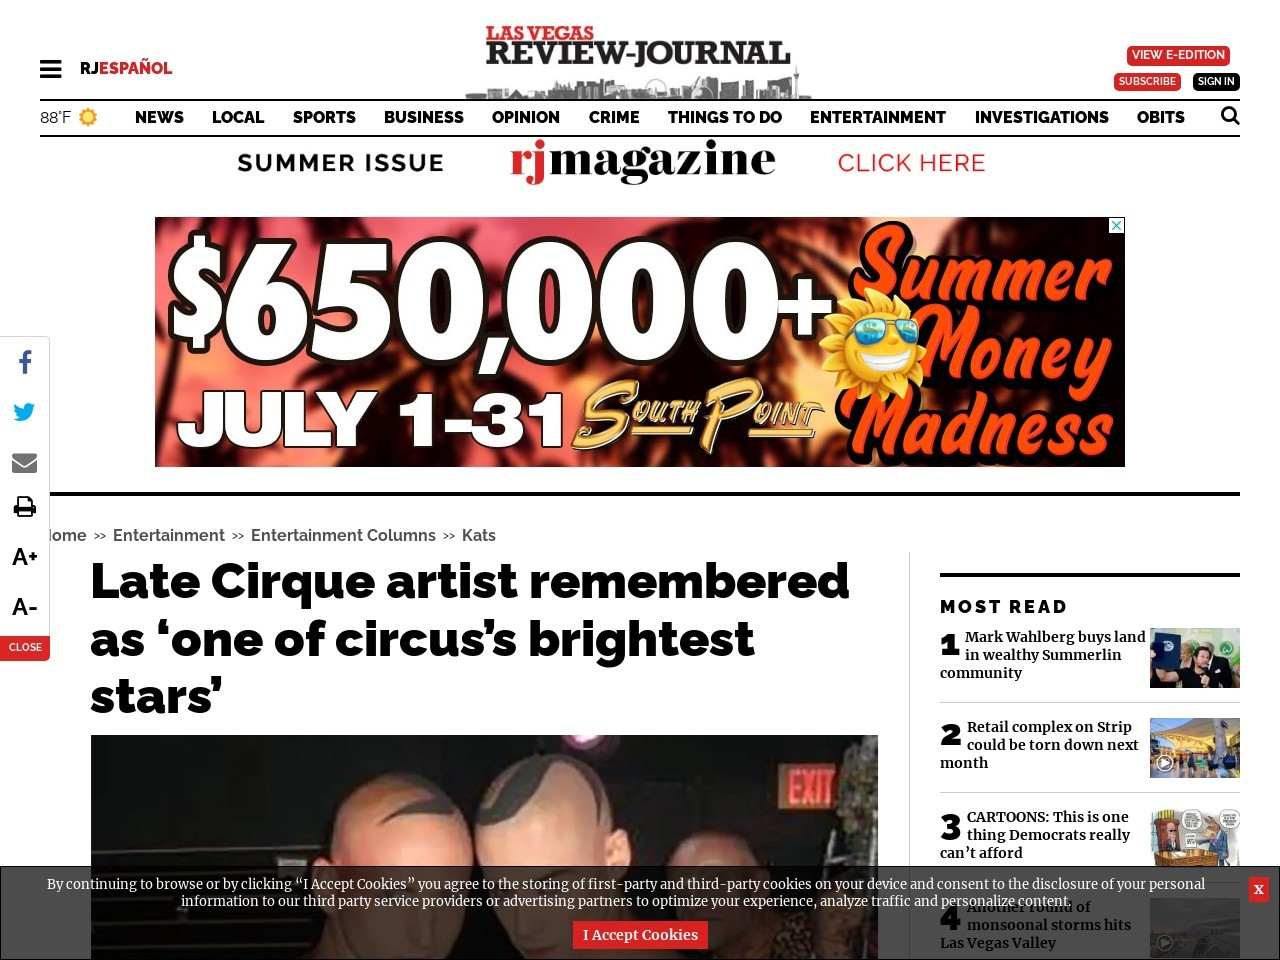 Late Cirque artist remembered as 'one of circus's brightest stars'